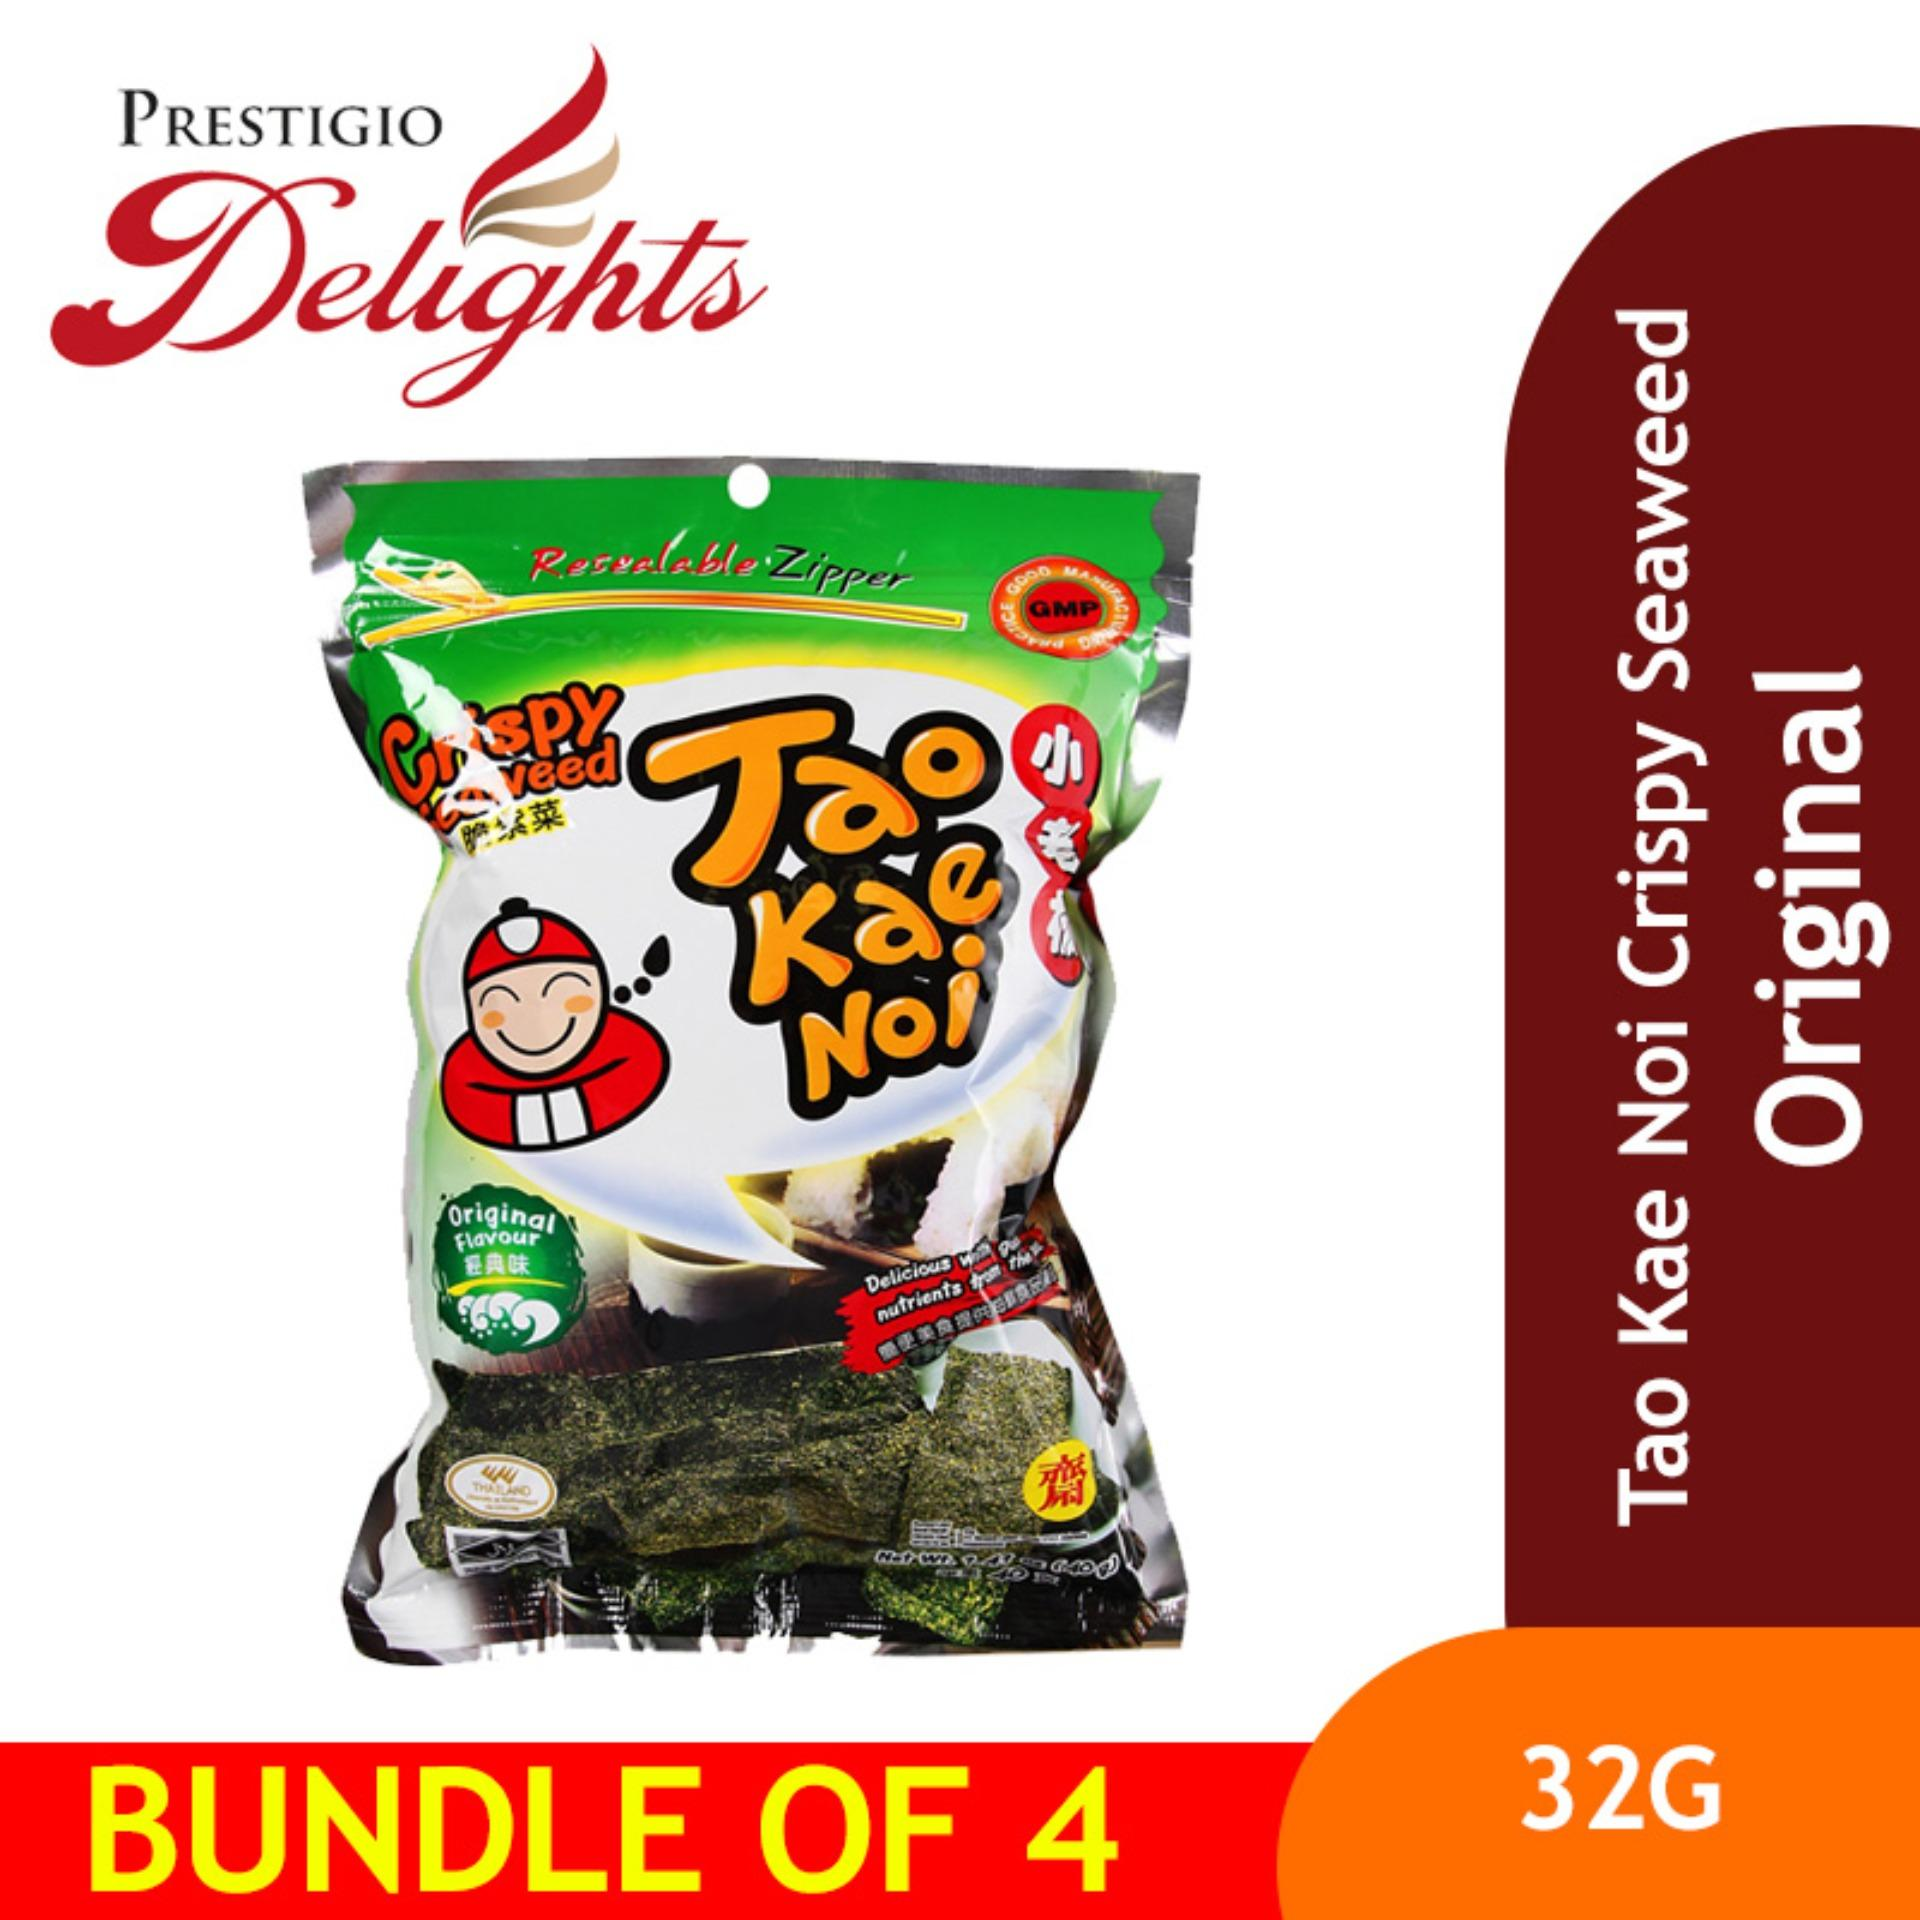 Tao Kae Noi Crispy Seaweed - 32g Original Bundle Of 4 By Prestigio Delights.